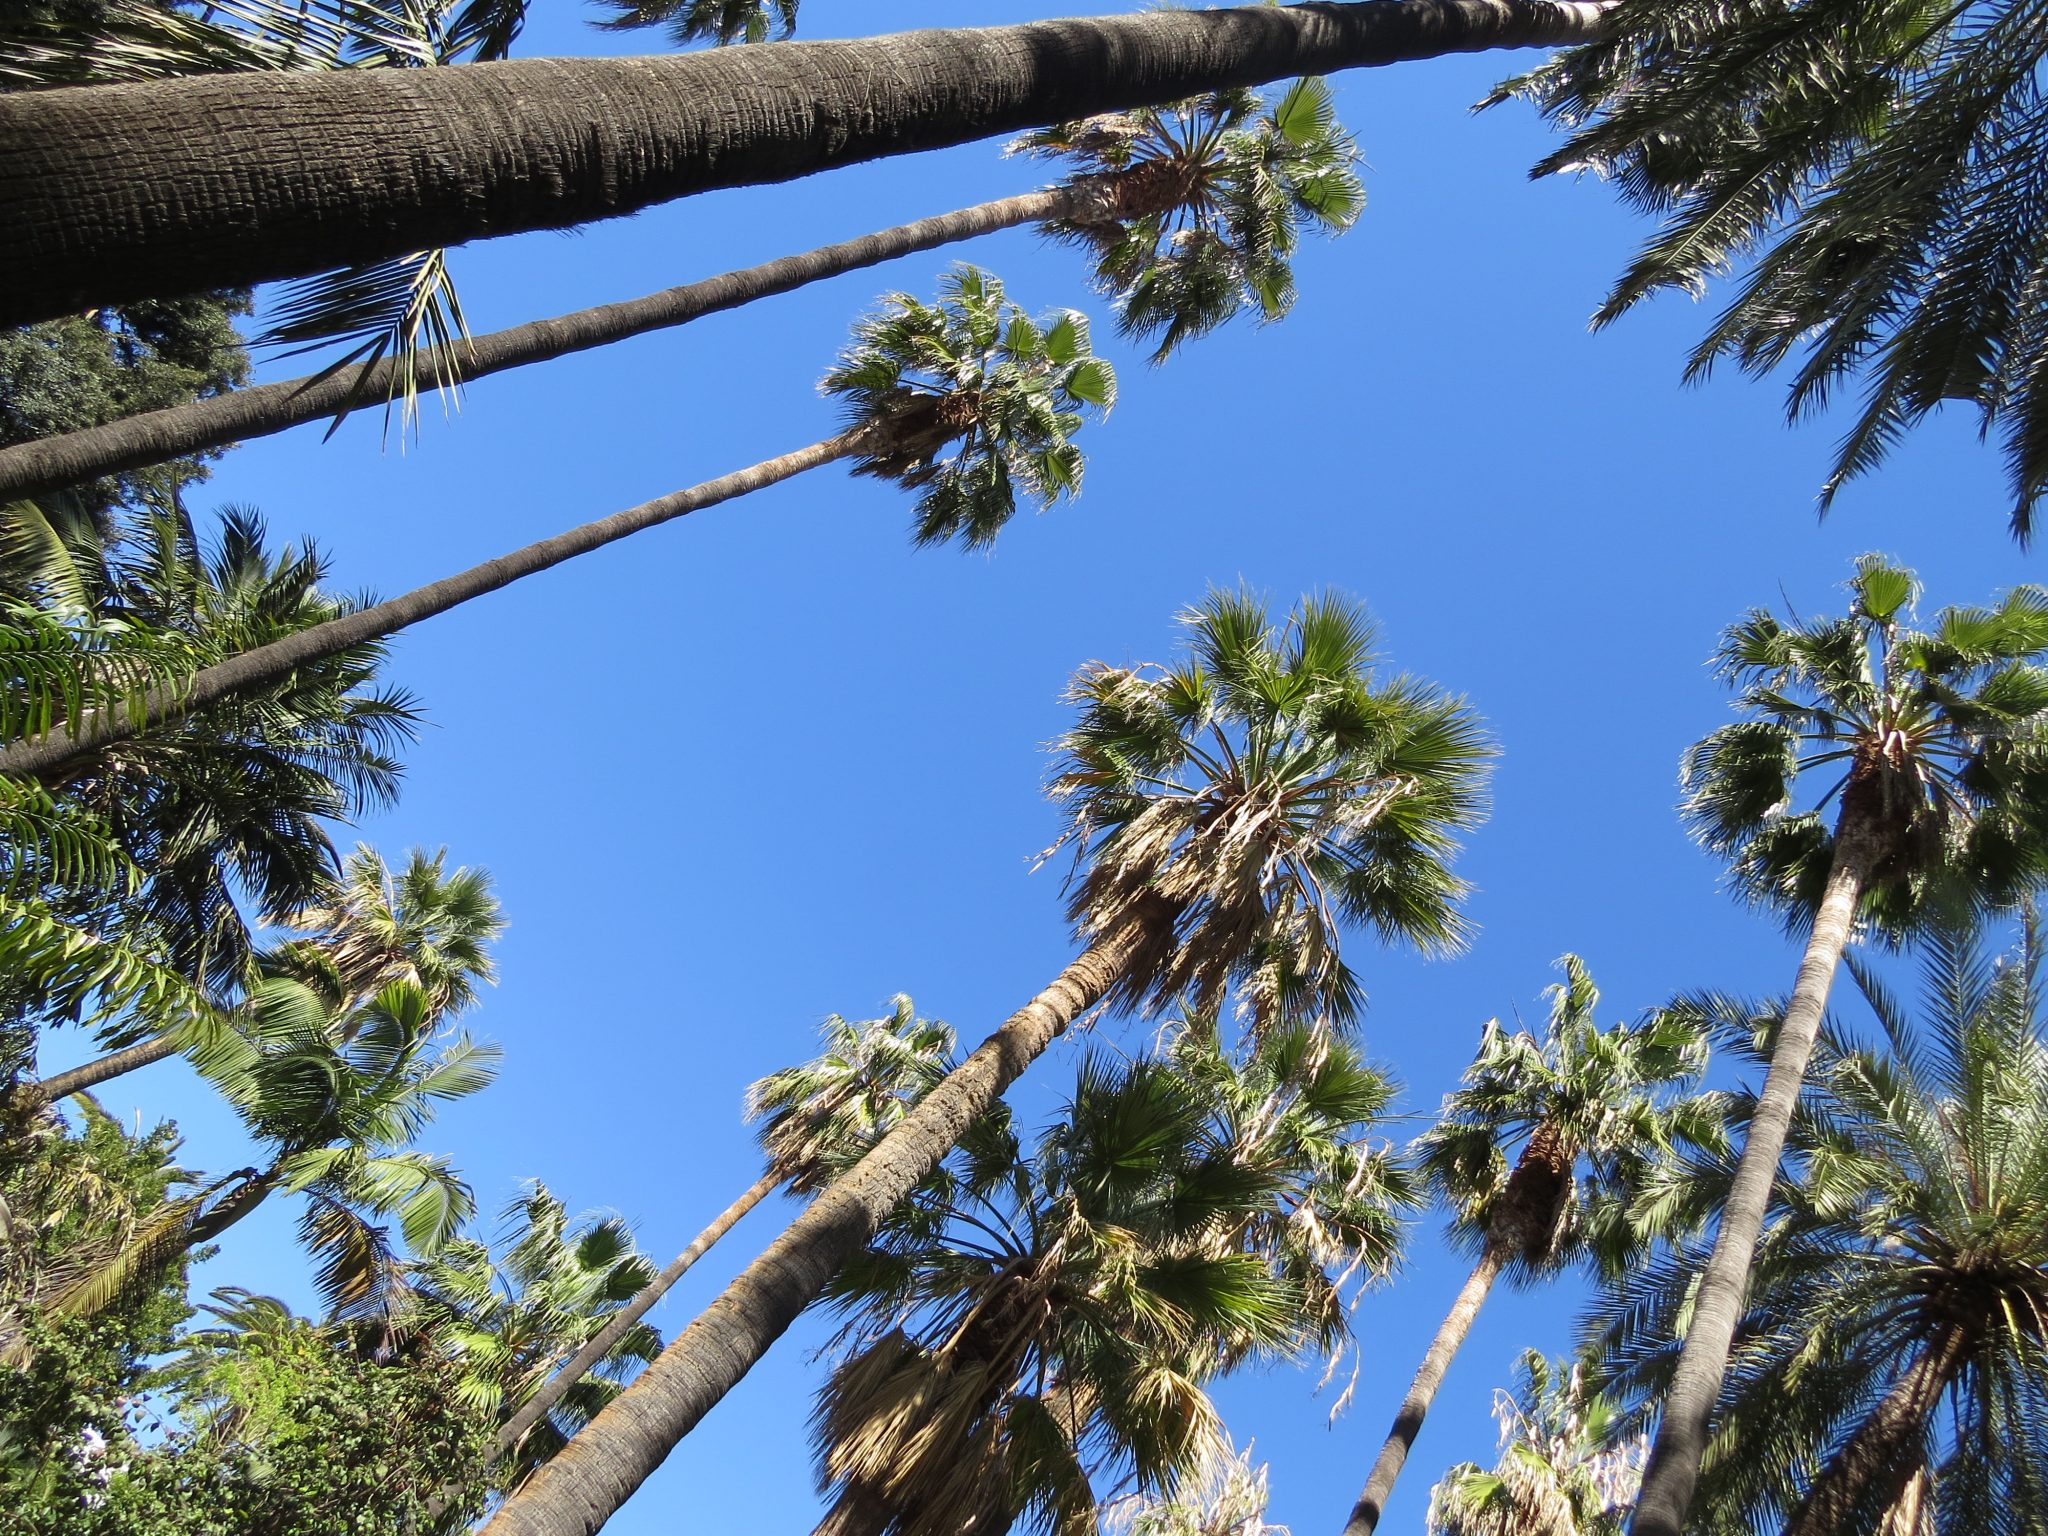 Relaxing under nature... soothing blue skies and tall trees